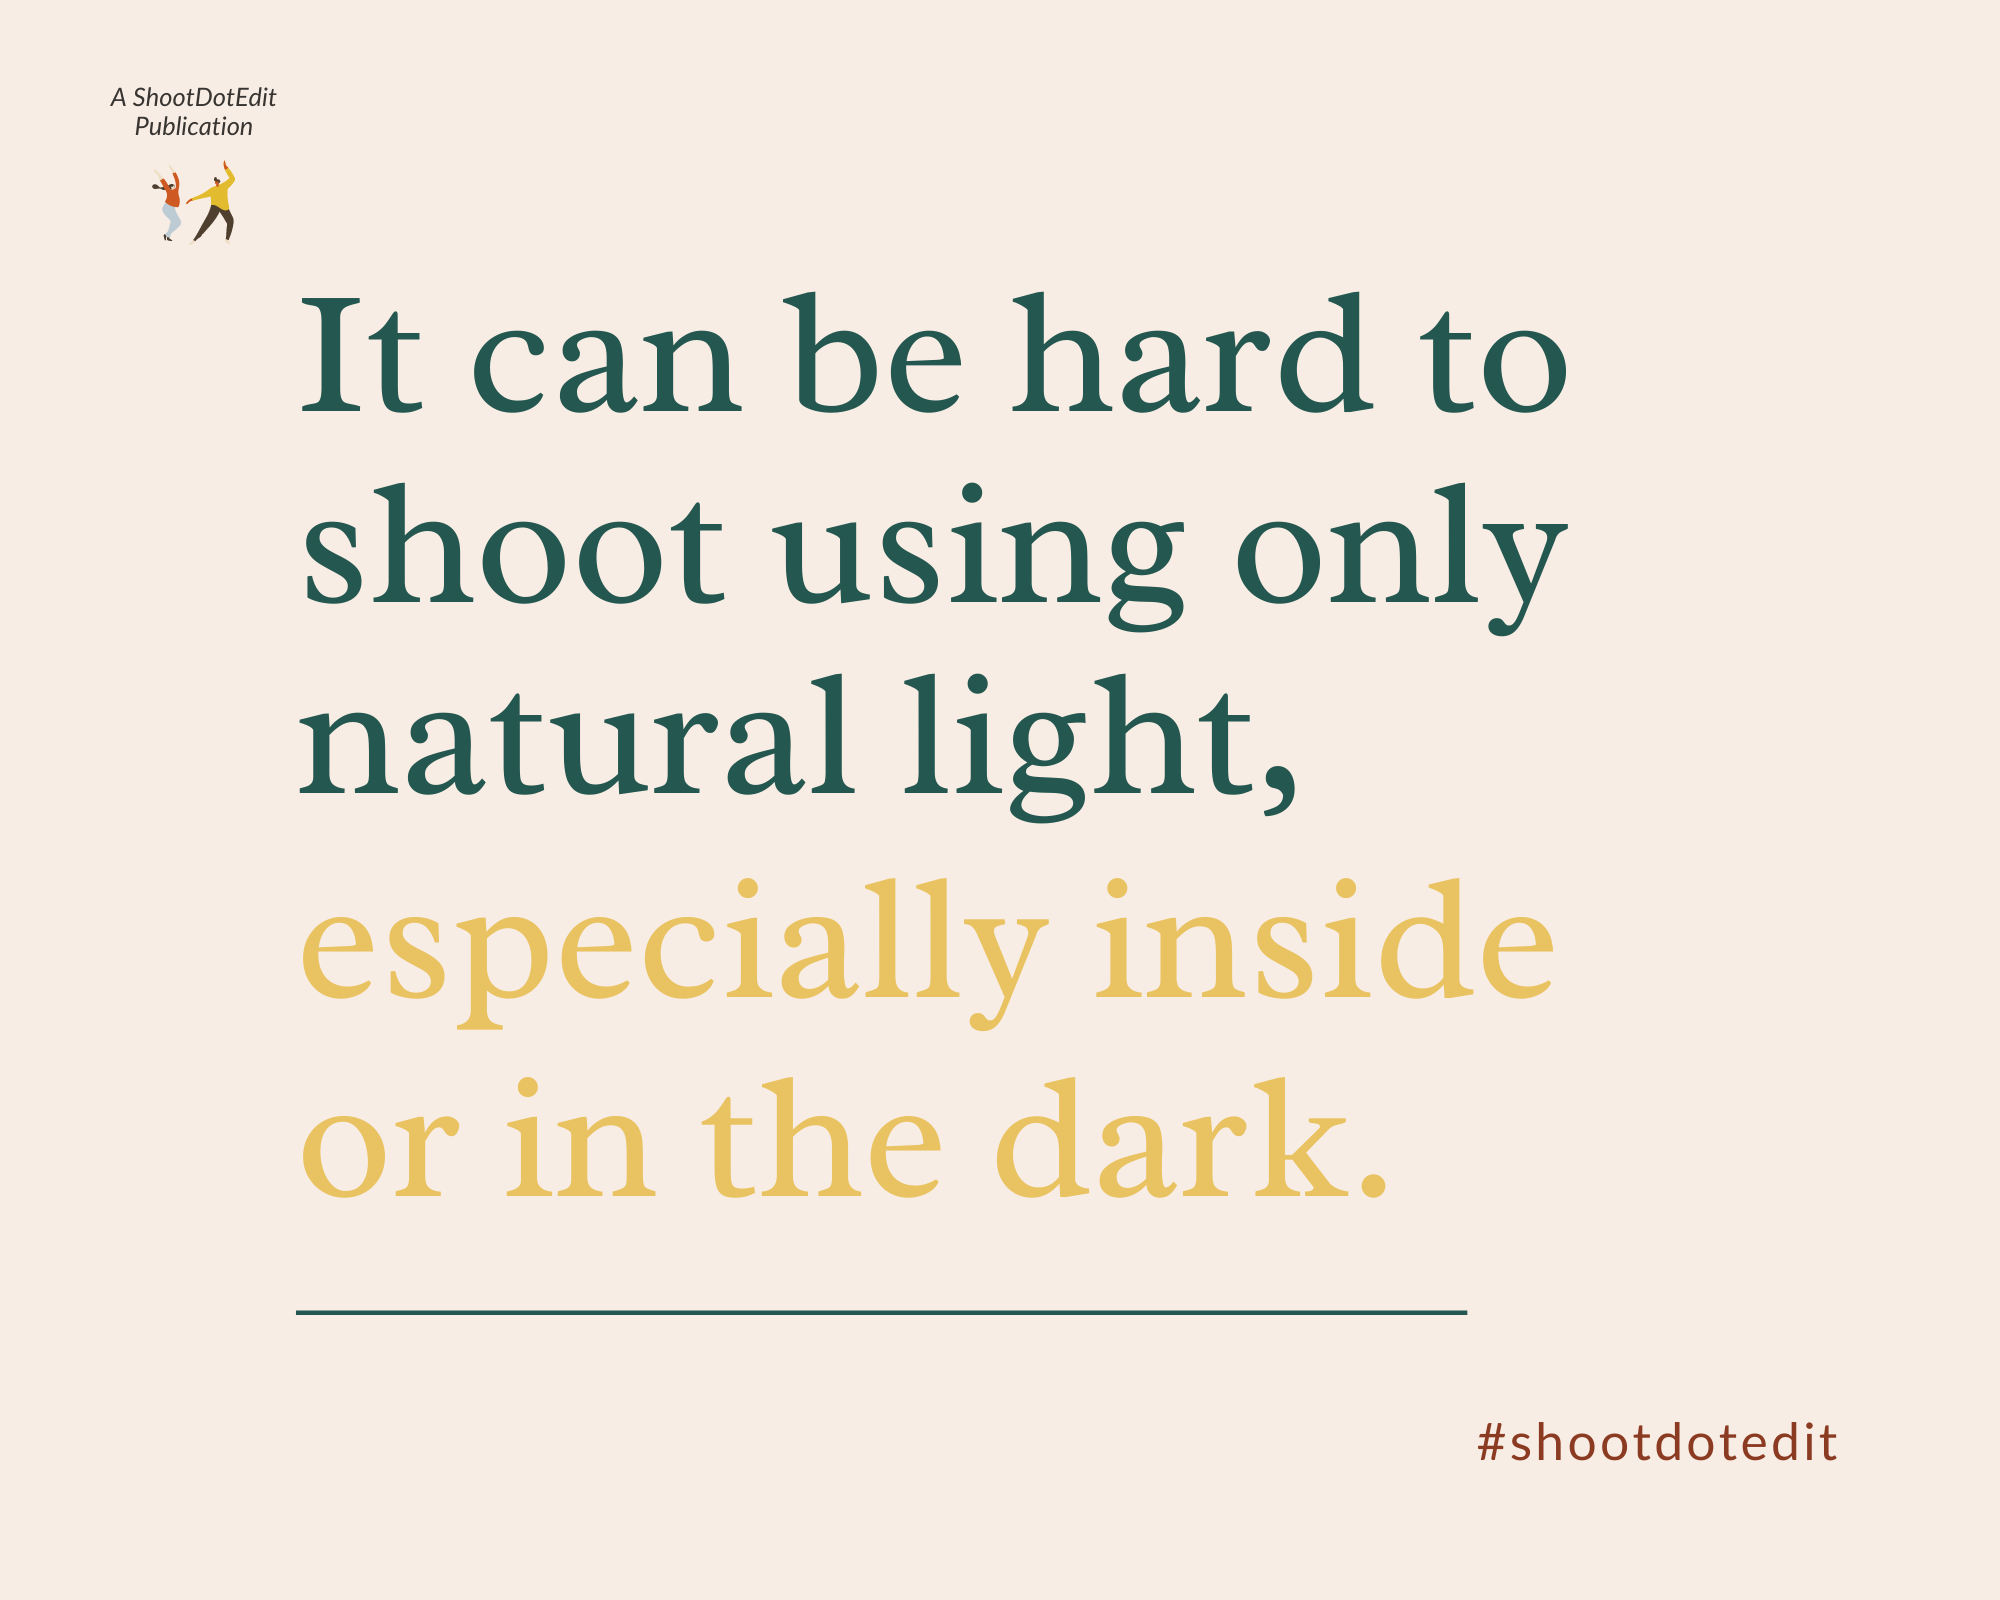 Infographic stating it can be hard to shoot using only natural light, especially inside or in the dark